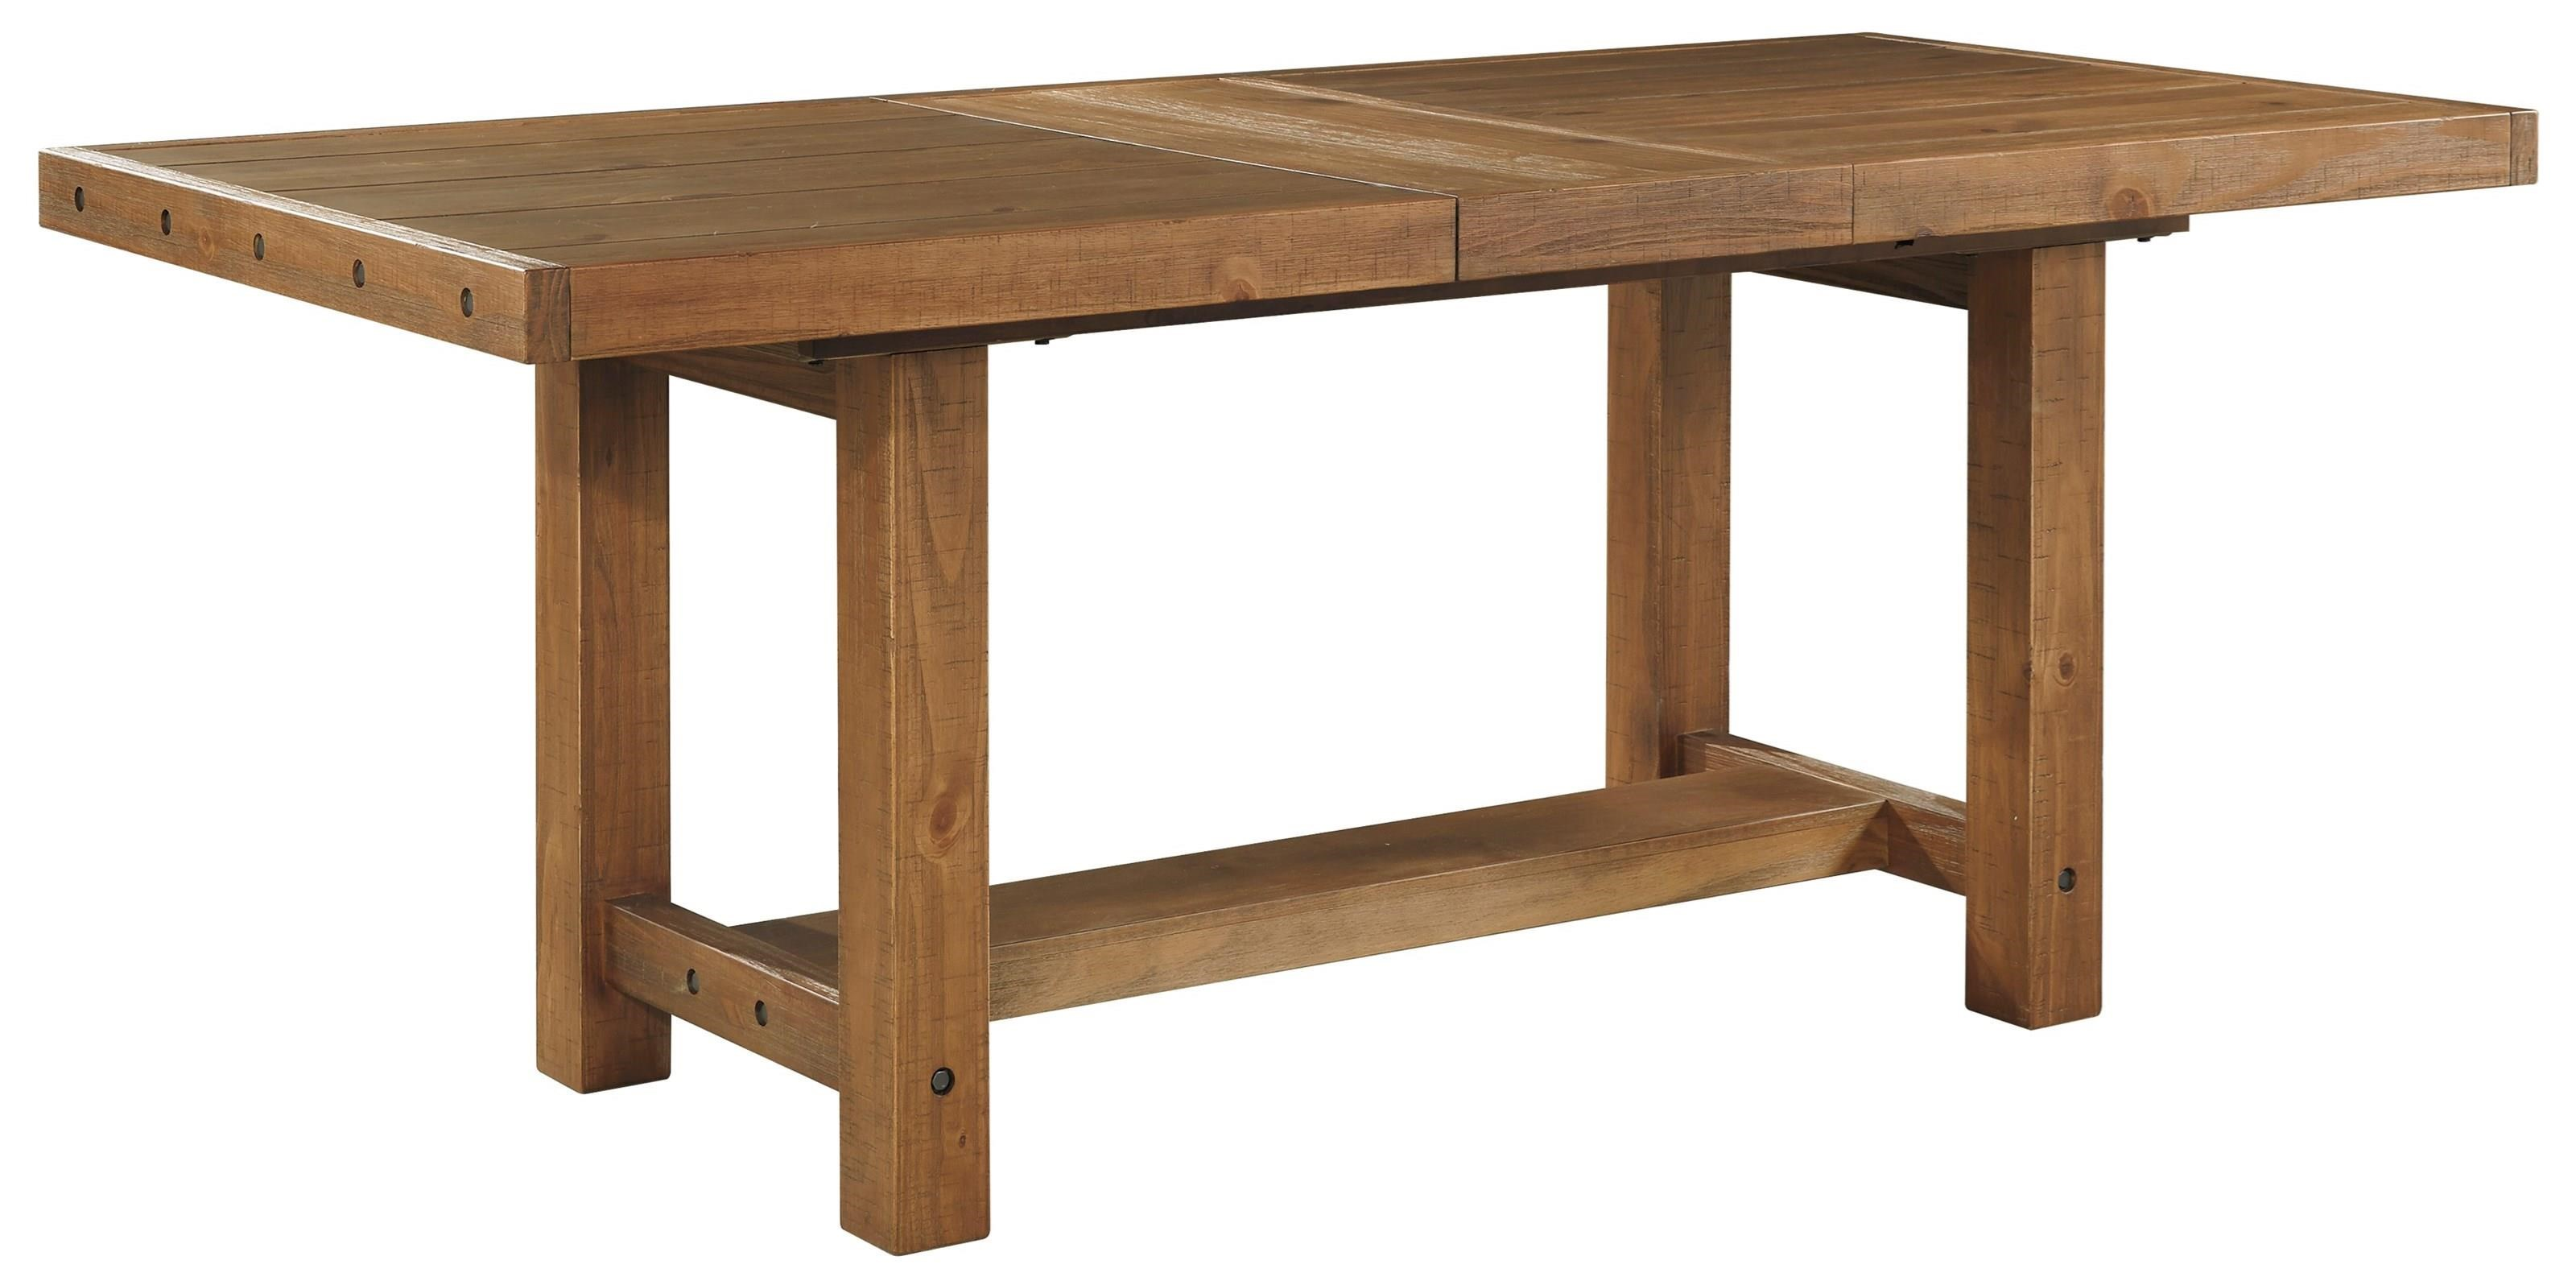 Signature Design by Ashley Tamilo Rectangle Dining Room Counter Table - Item Number: D714-32